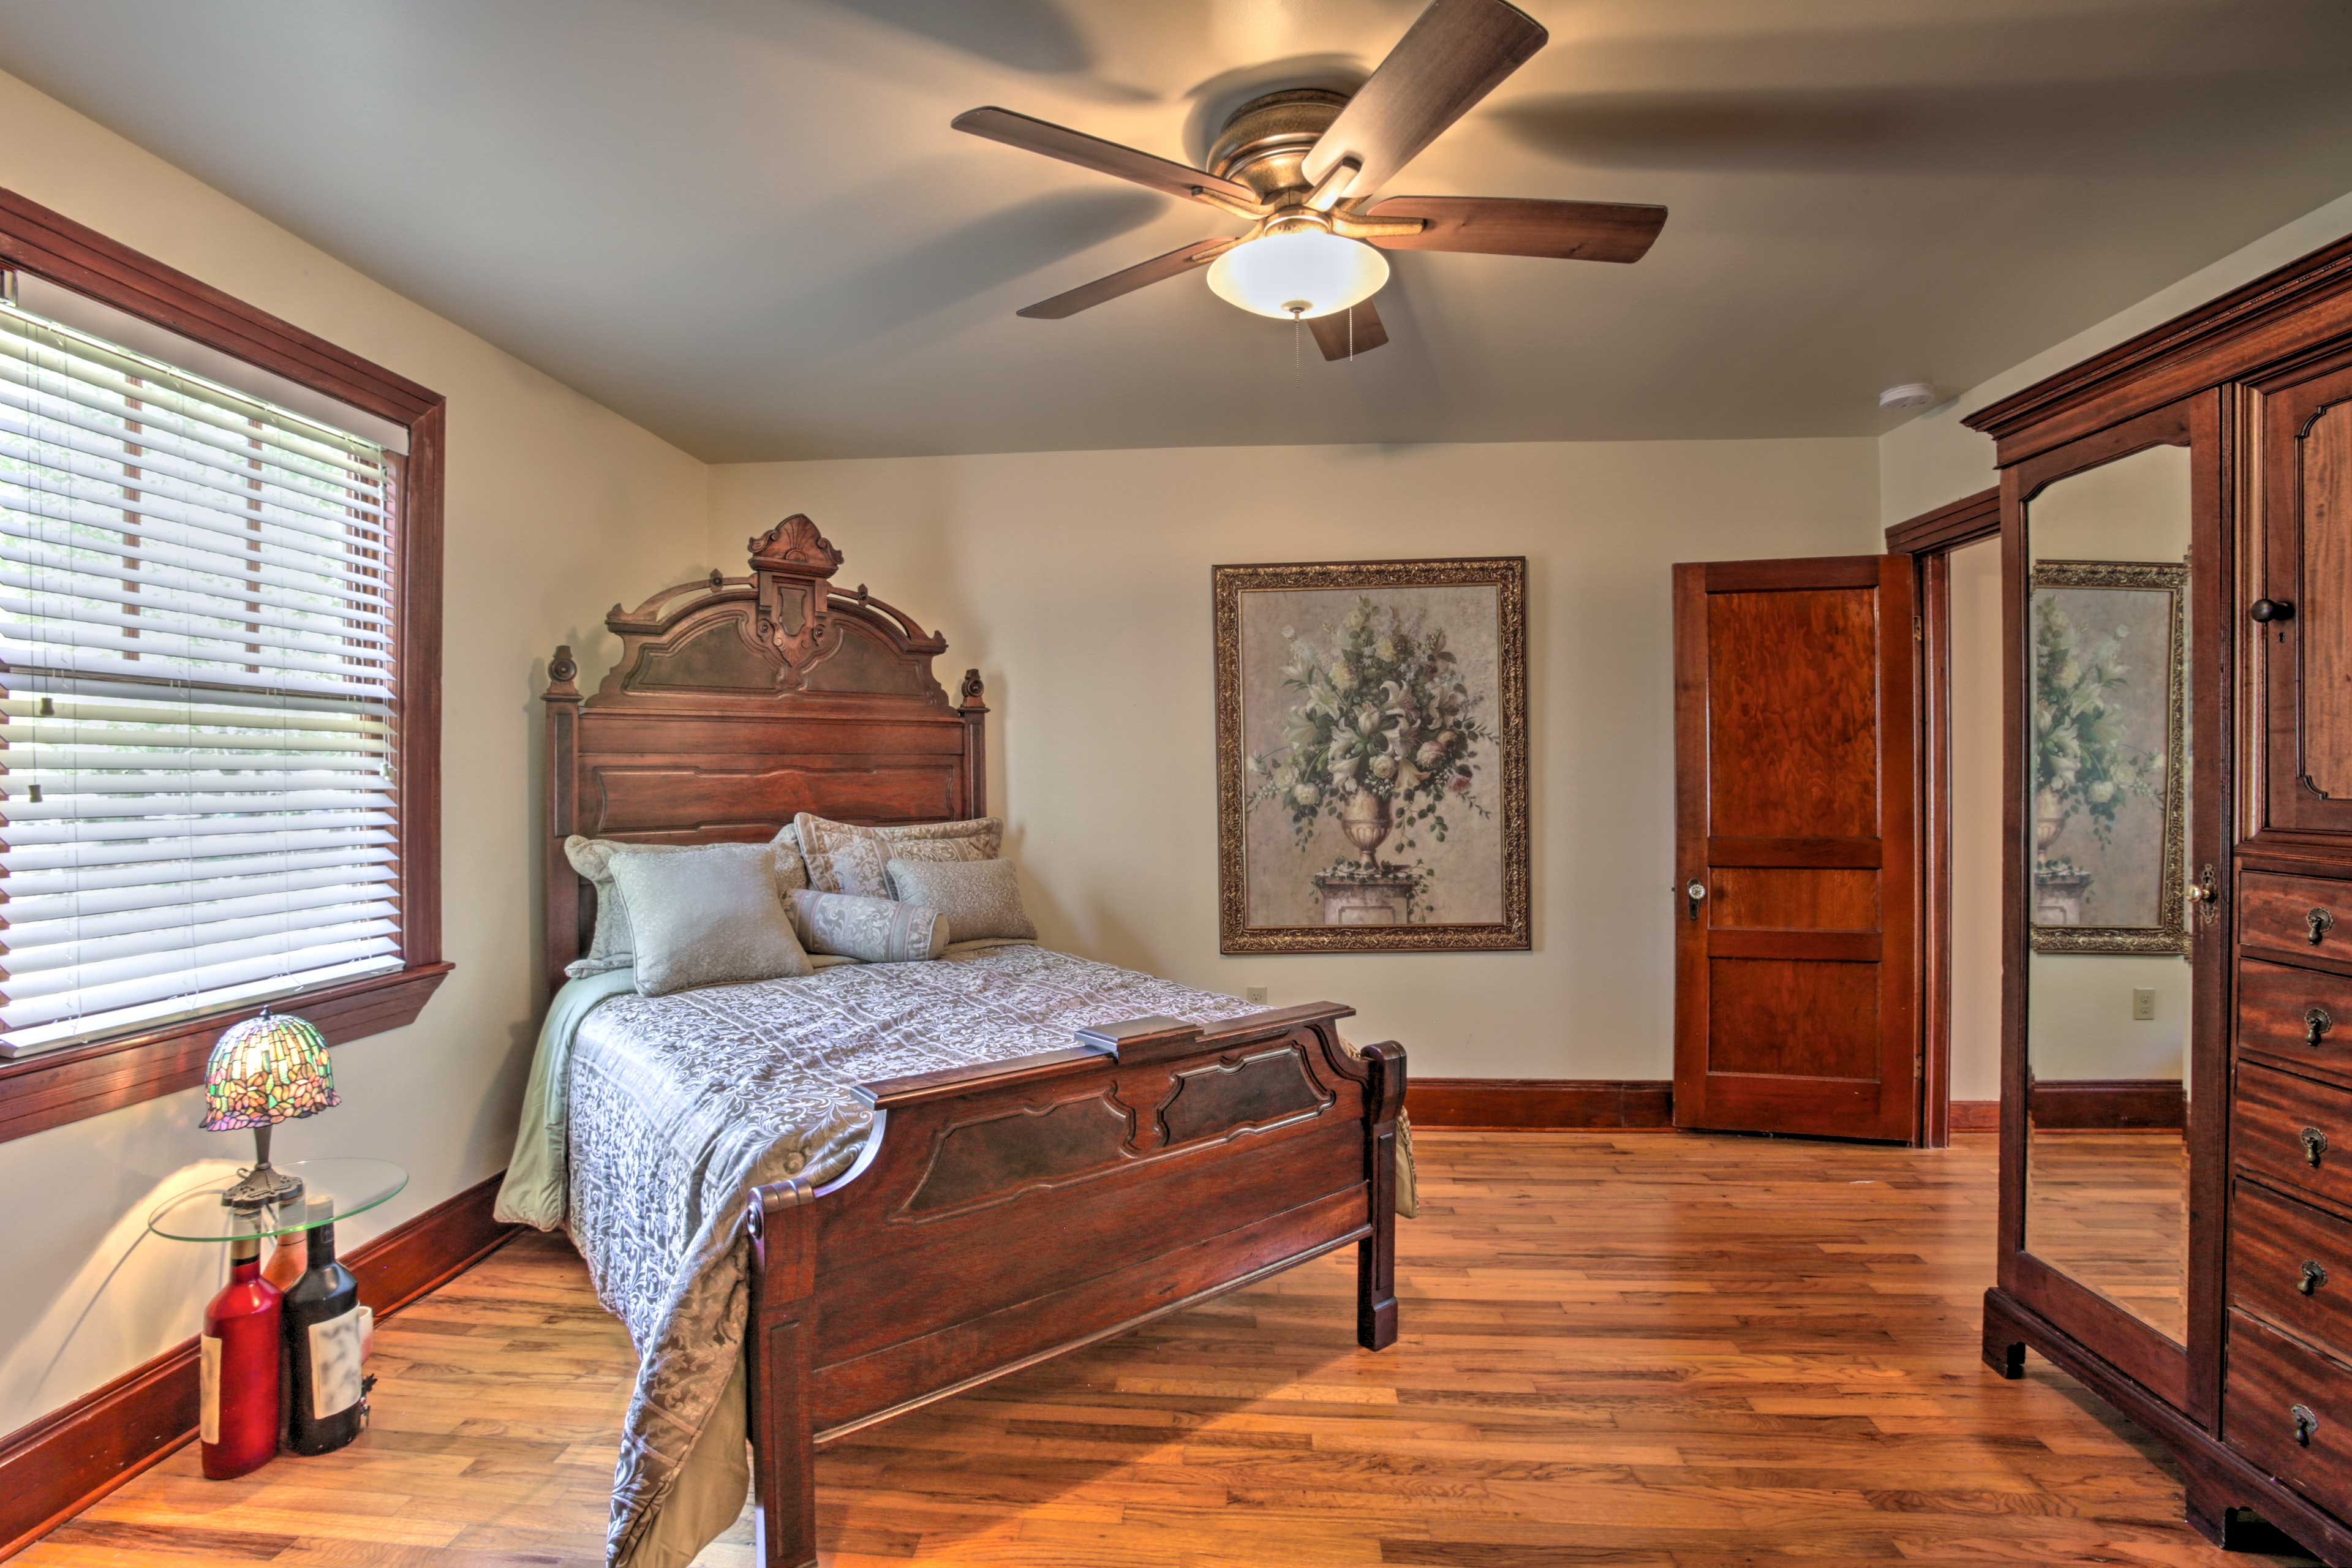 Enjoy the elegance of the third bedroom's fine wooden bedframe and decor.